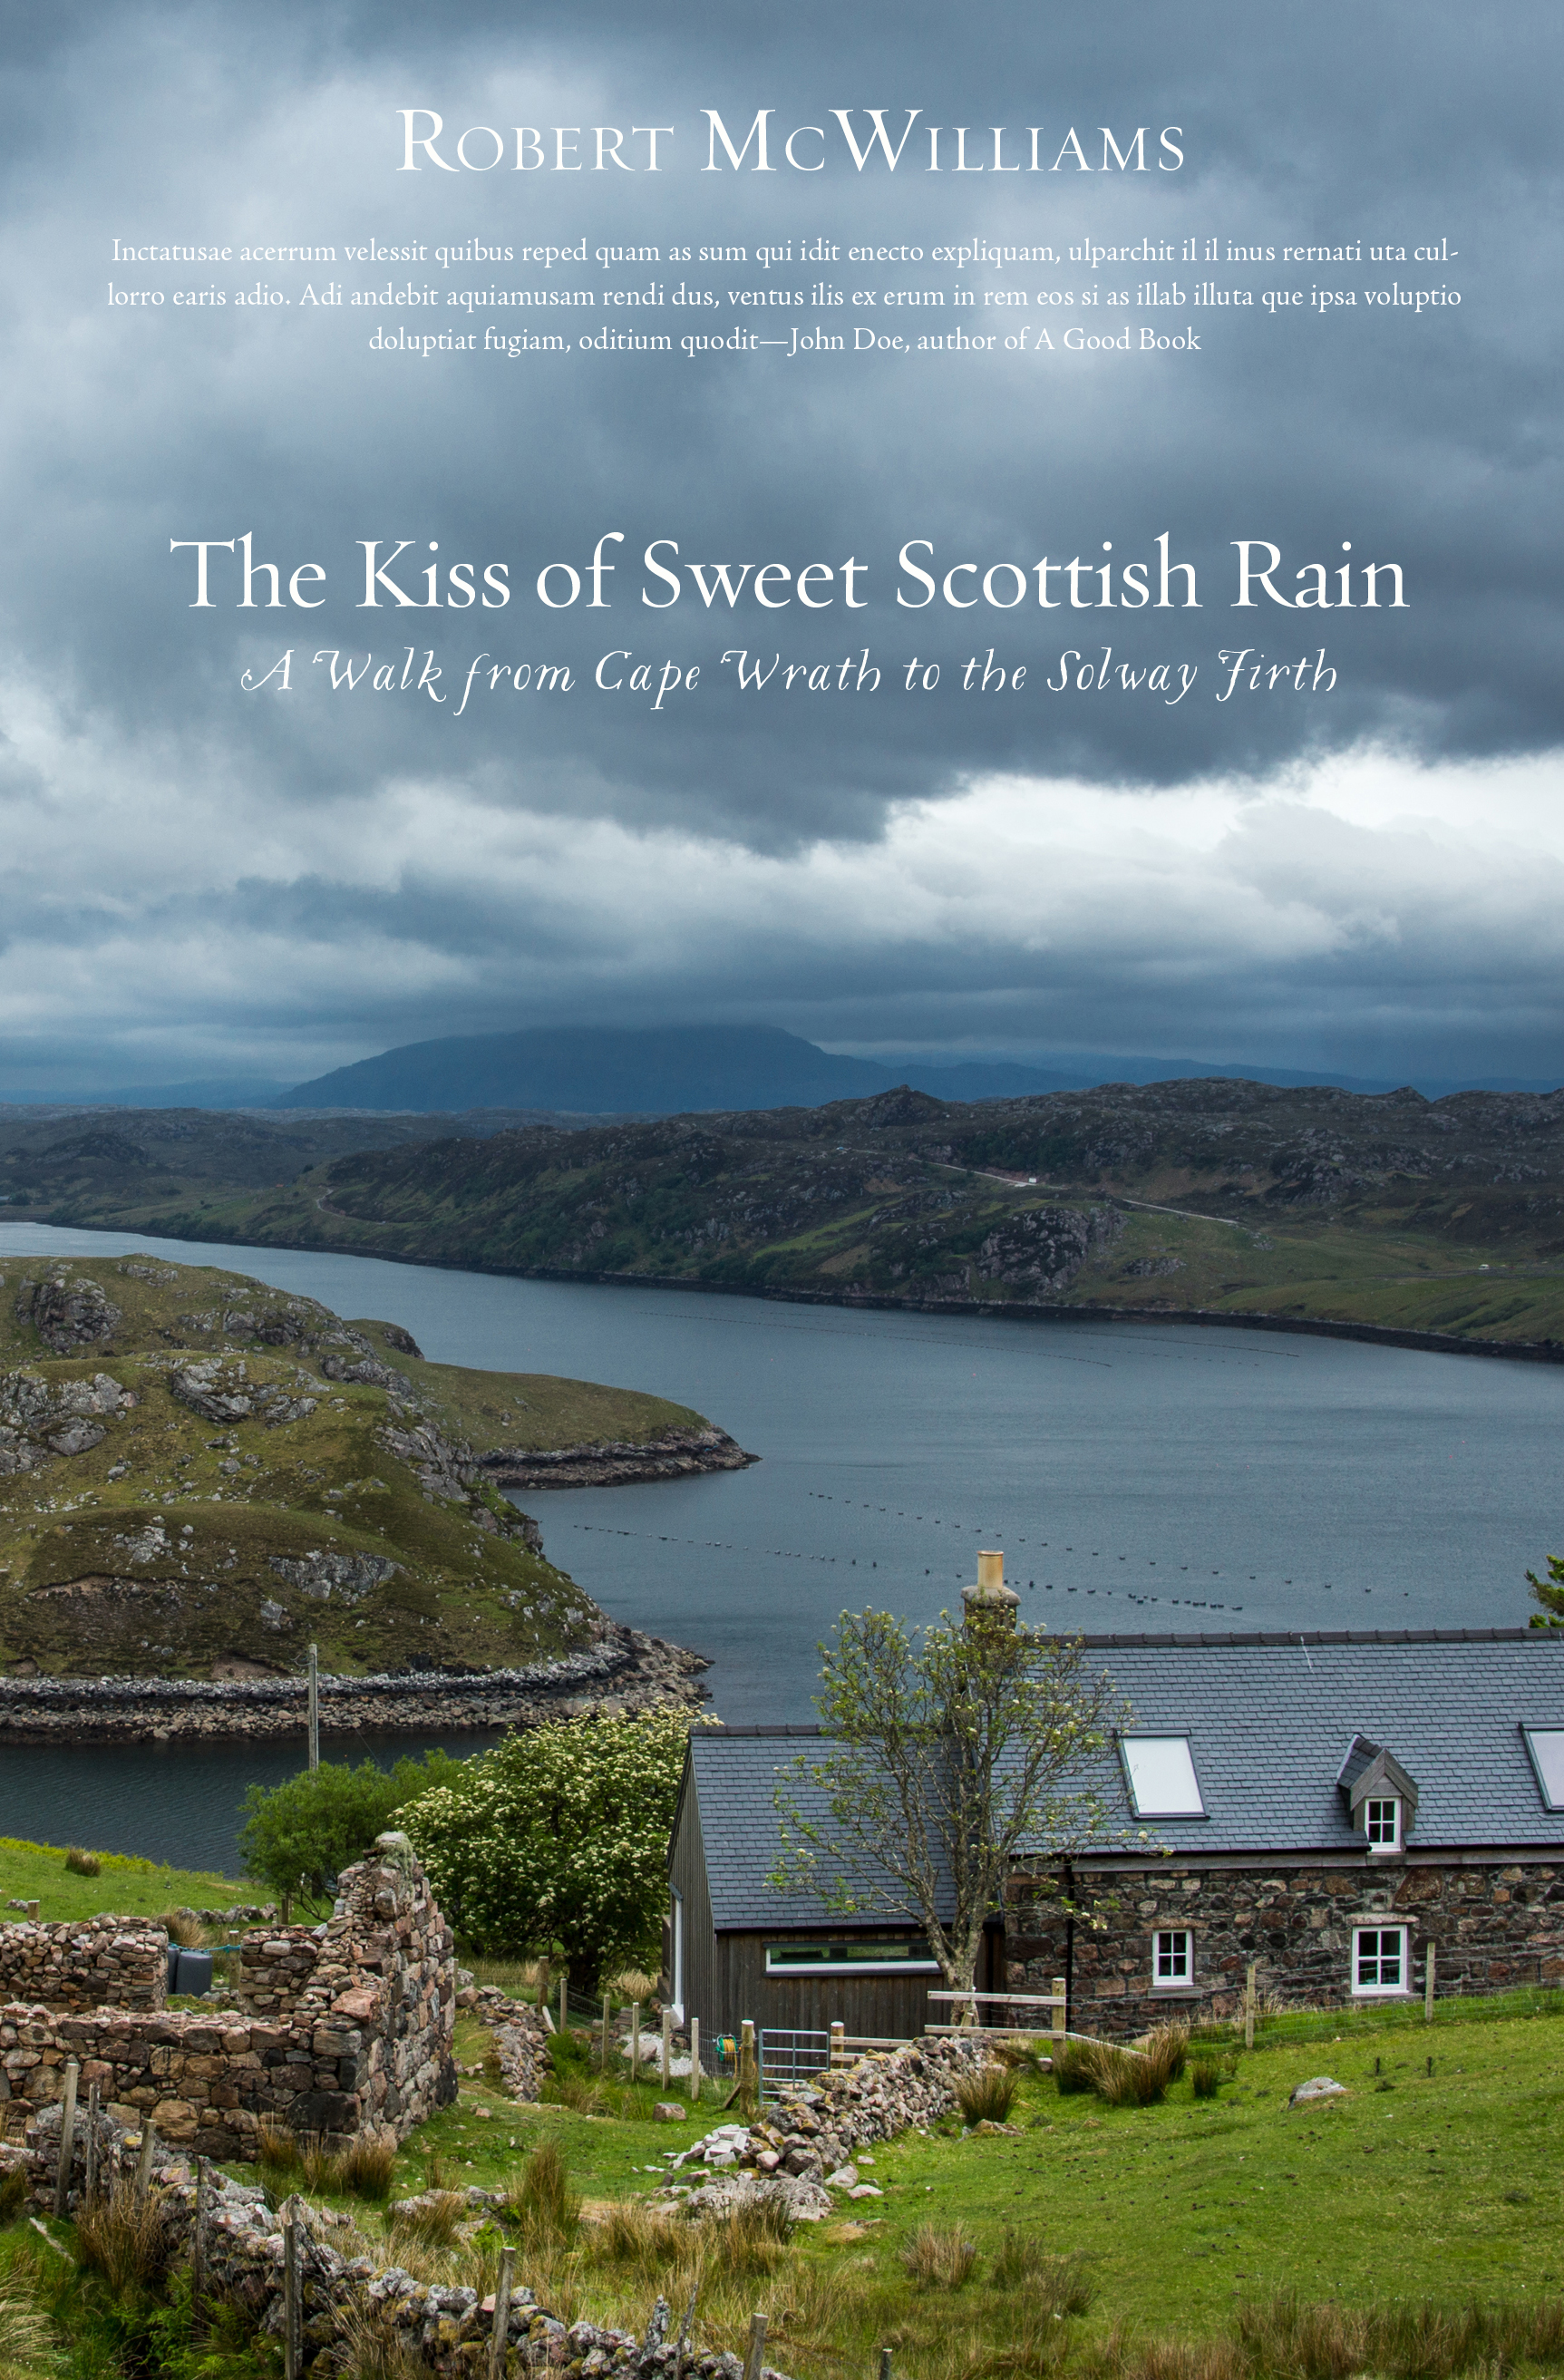 The Kiss of Sweet Scottish Rain